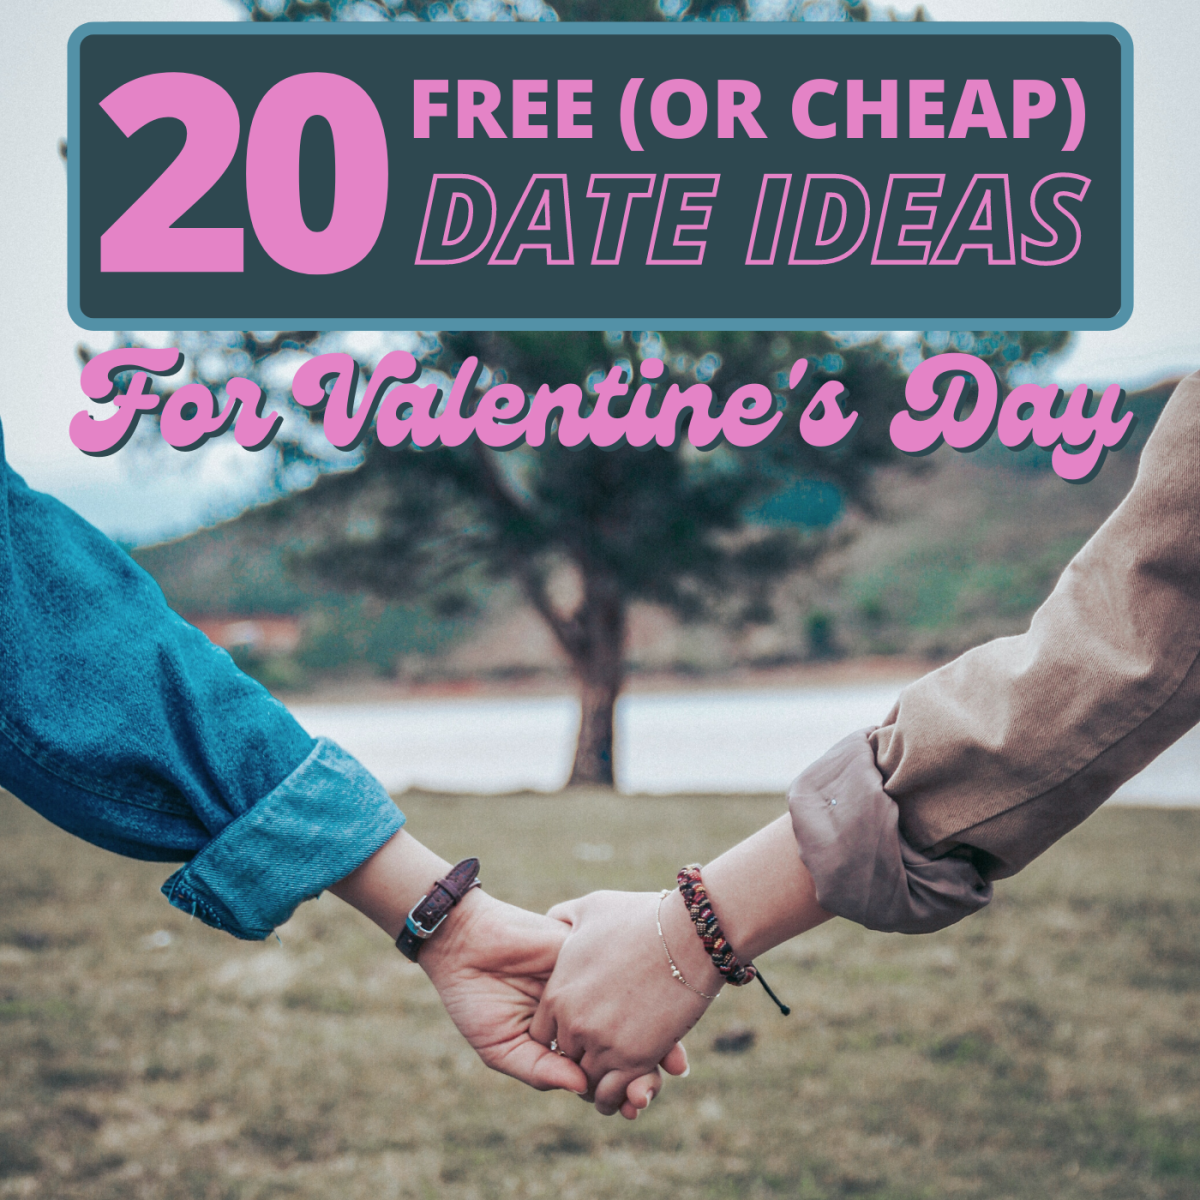 You don't have to decimate your paycheck to have a memorable Valentine's Day experience with your partner.